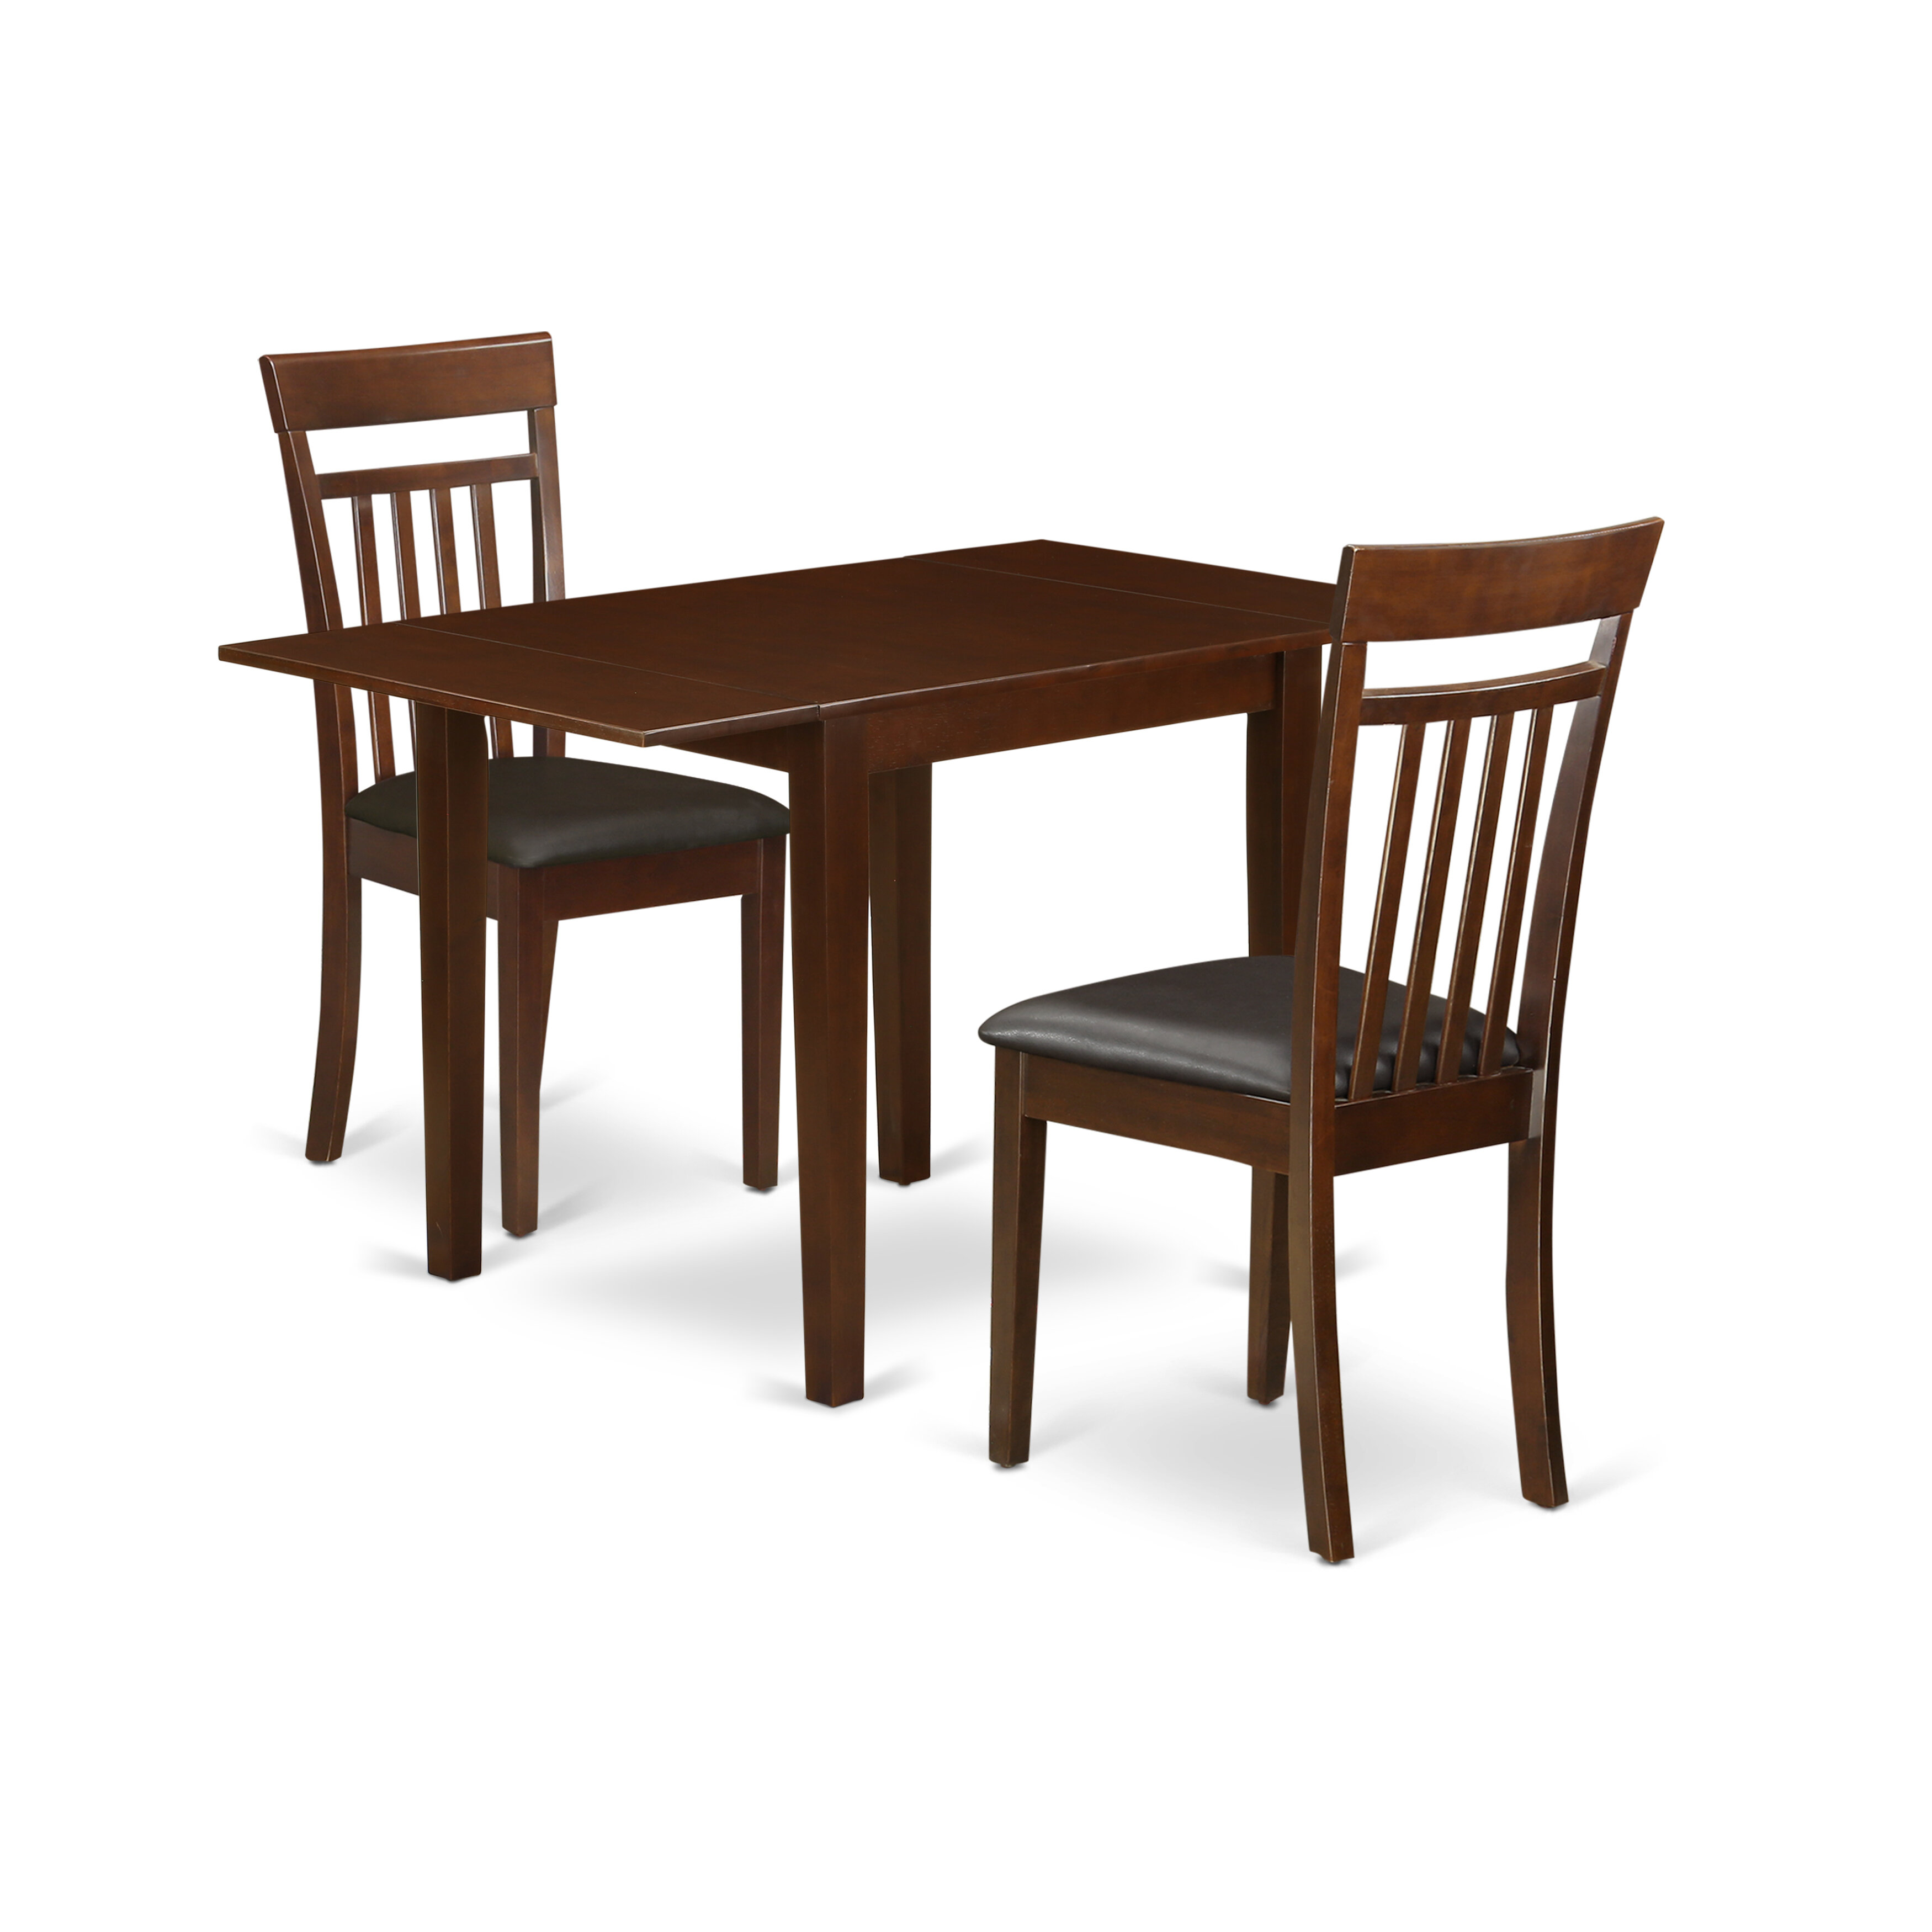 Winston Porter Modern Dining Table Set For 5 Four Outstanding Wooden Dining Room Chairs An Attractive Dining Room Table Mahogany Colour Faux Leather Mahogany Finish Wood Structure Wayfair Ca